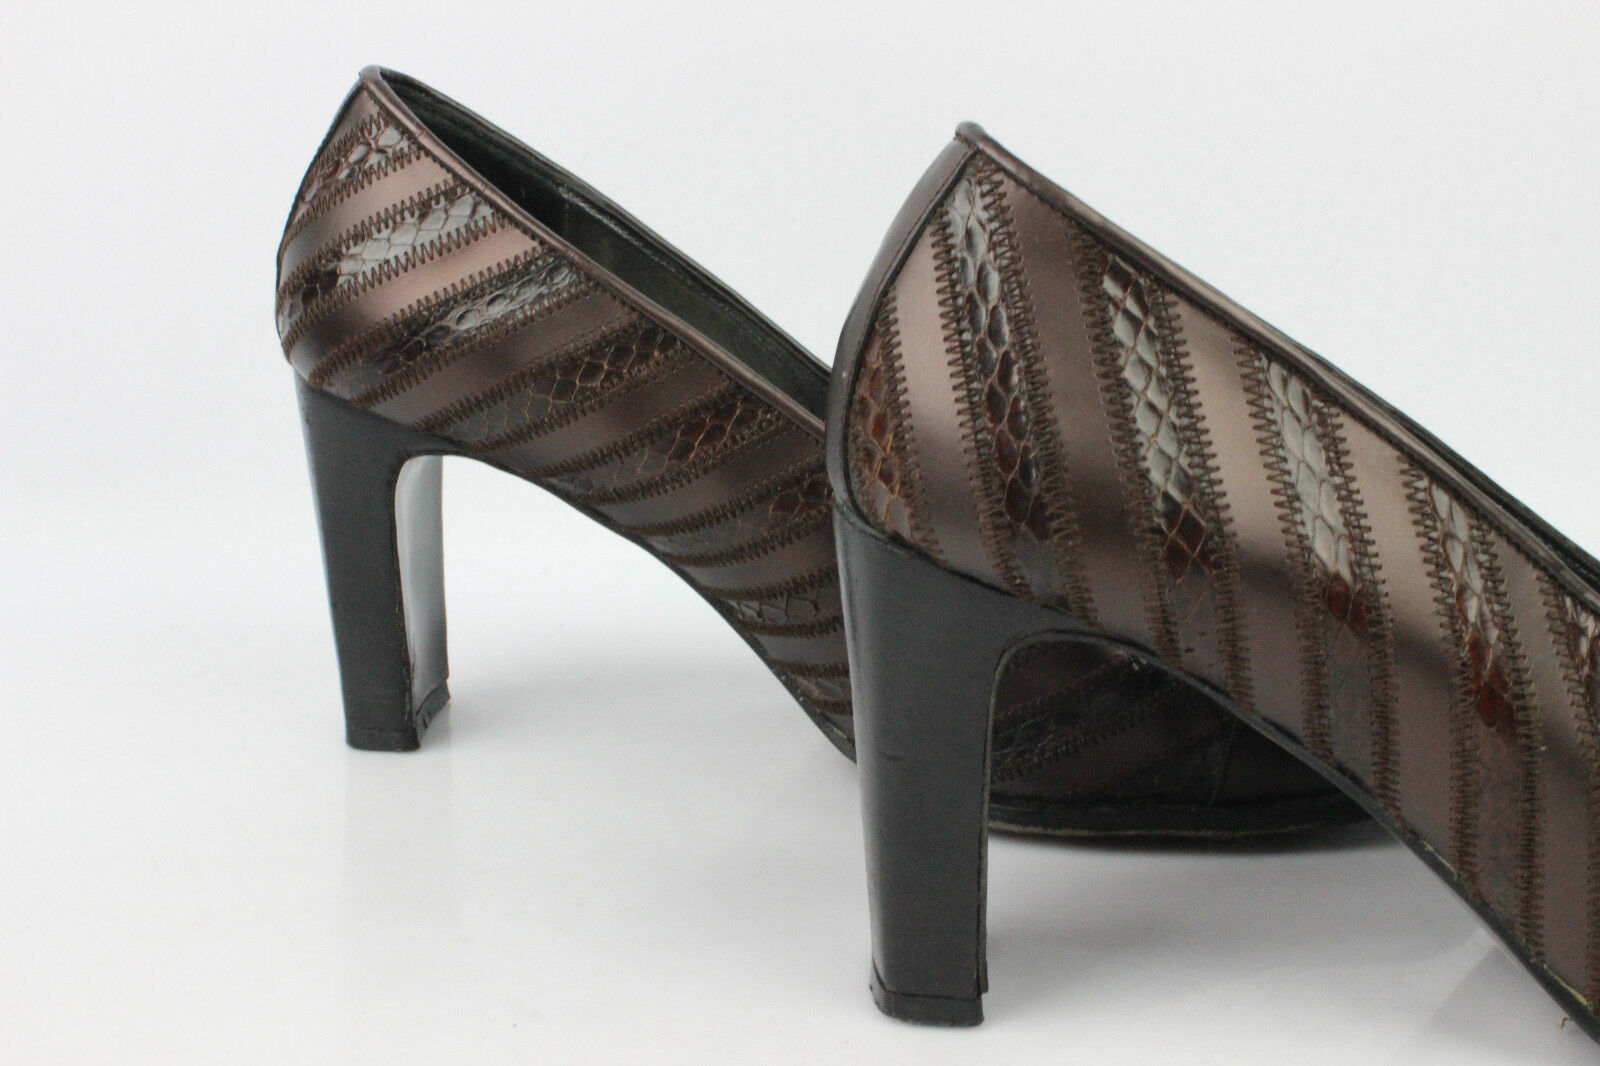 VINTAGE Court shoes THE THOUGHT THOUGHT THOUGHT by ANTONELLA All Leather Bronze T 38,5 59213a